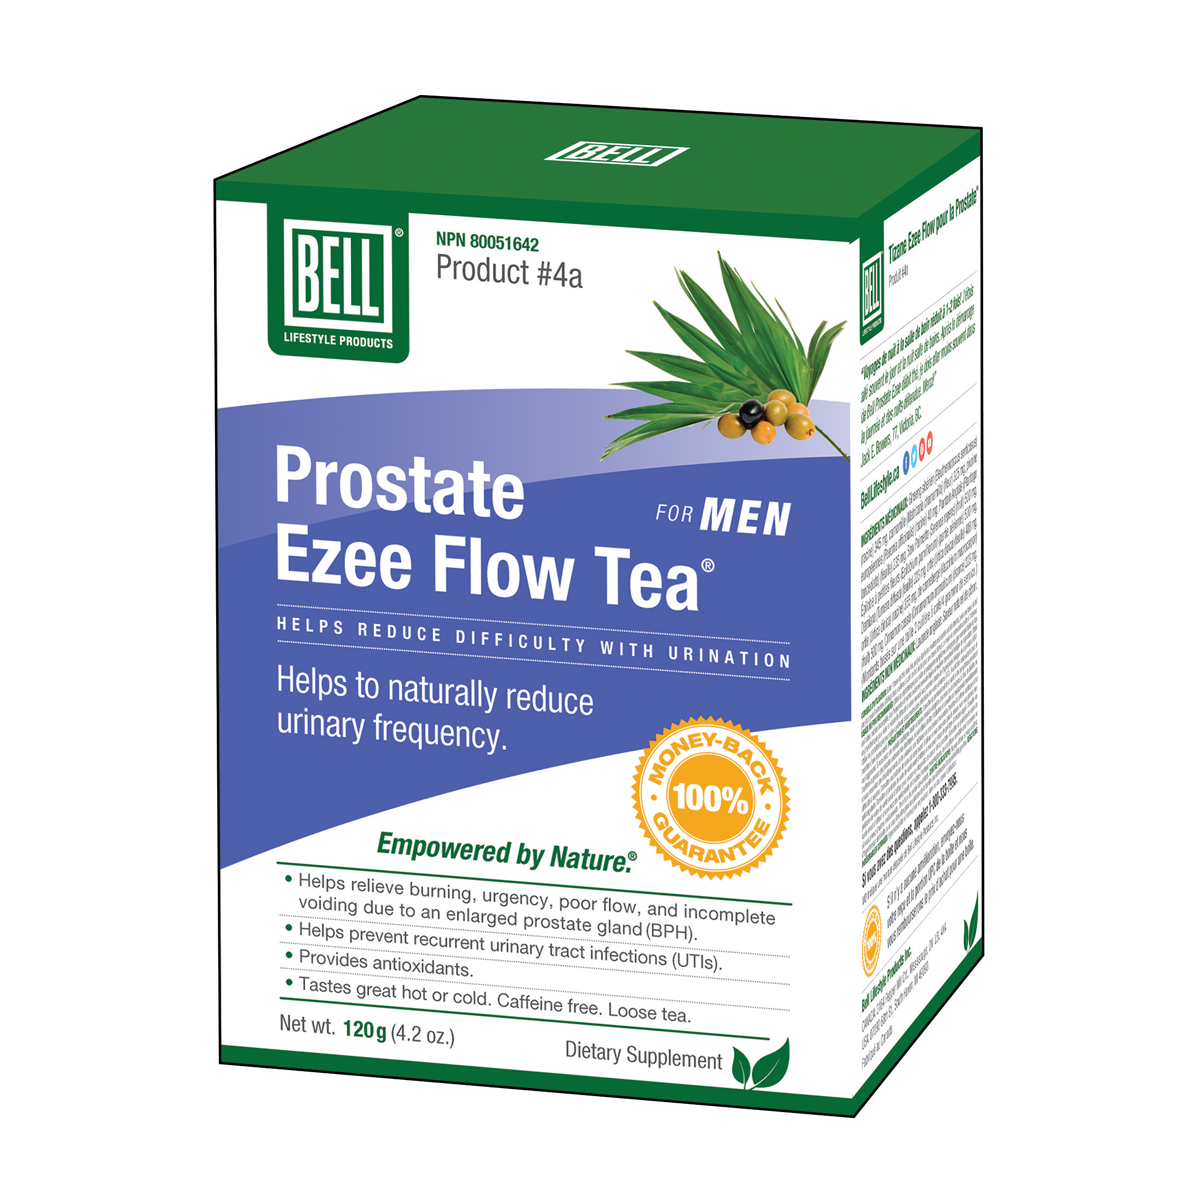 Bell - Ezee Flow Tea - 120g